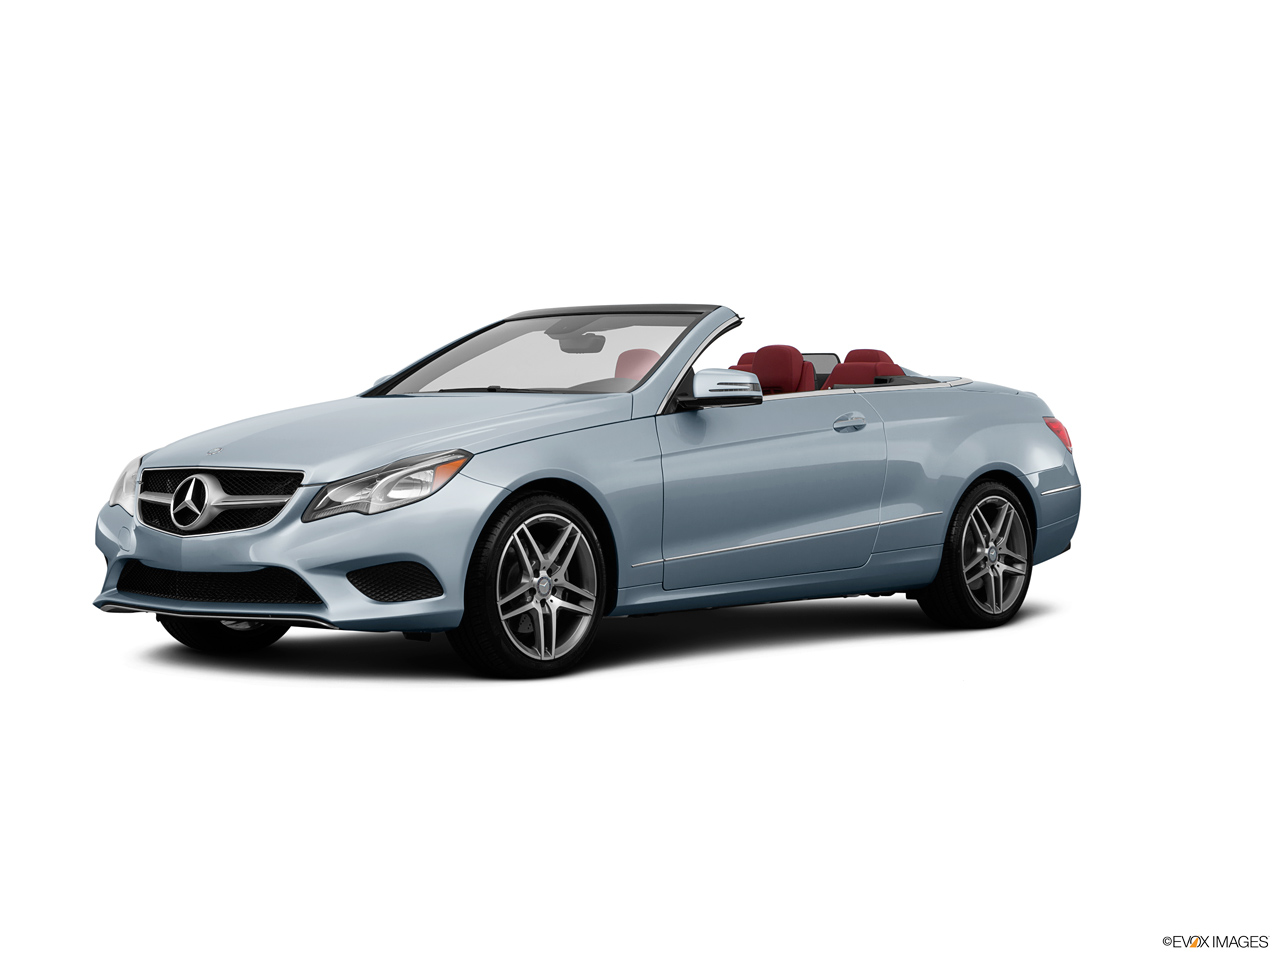 Car pictures list for mercedes benz e class cabriolet 2016 for Mercedes benz classes list